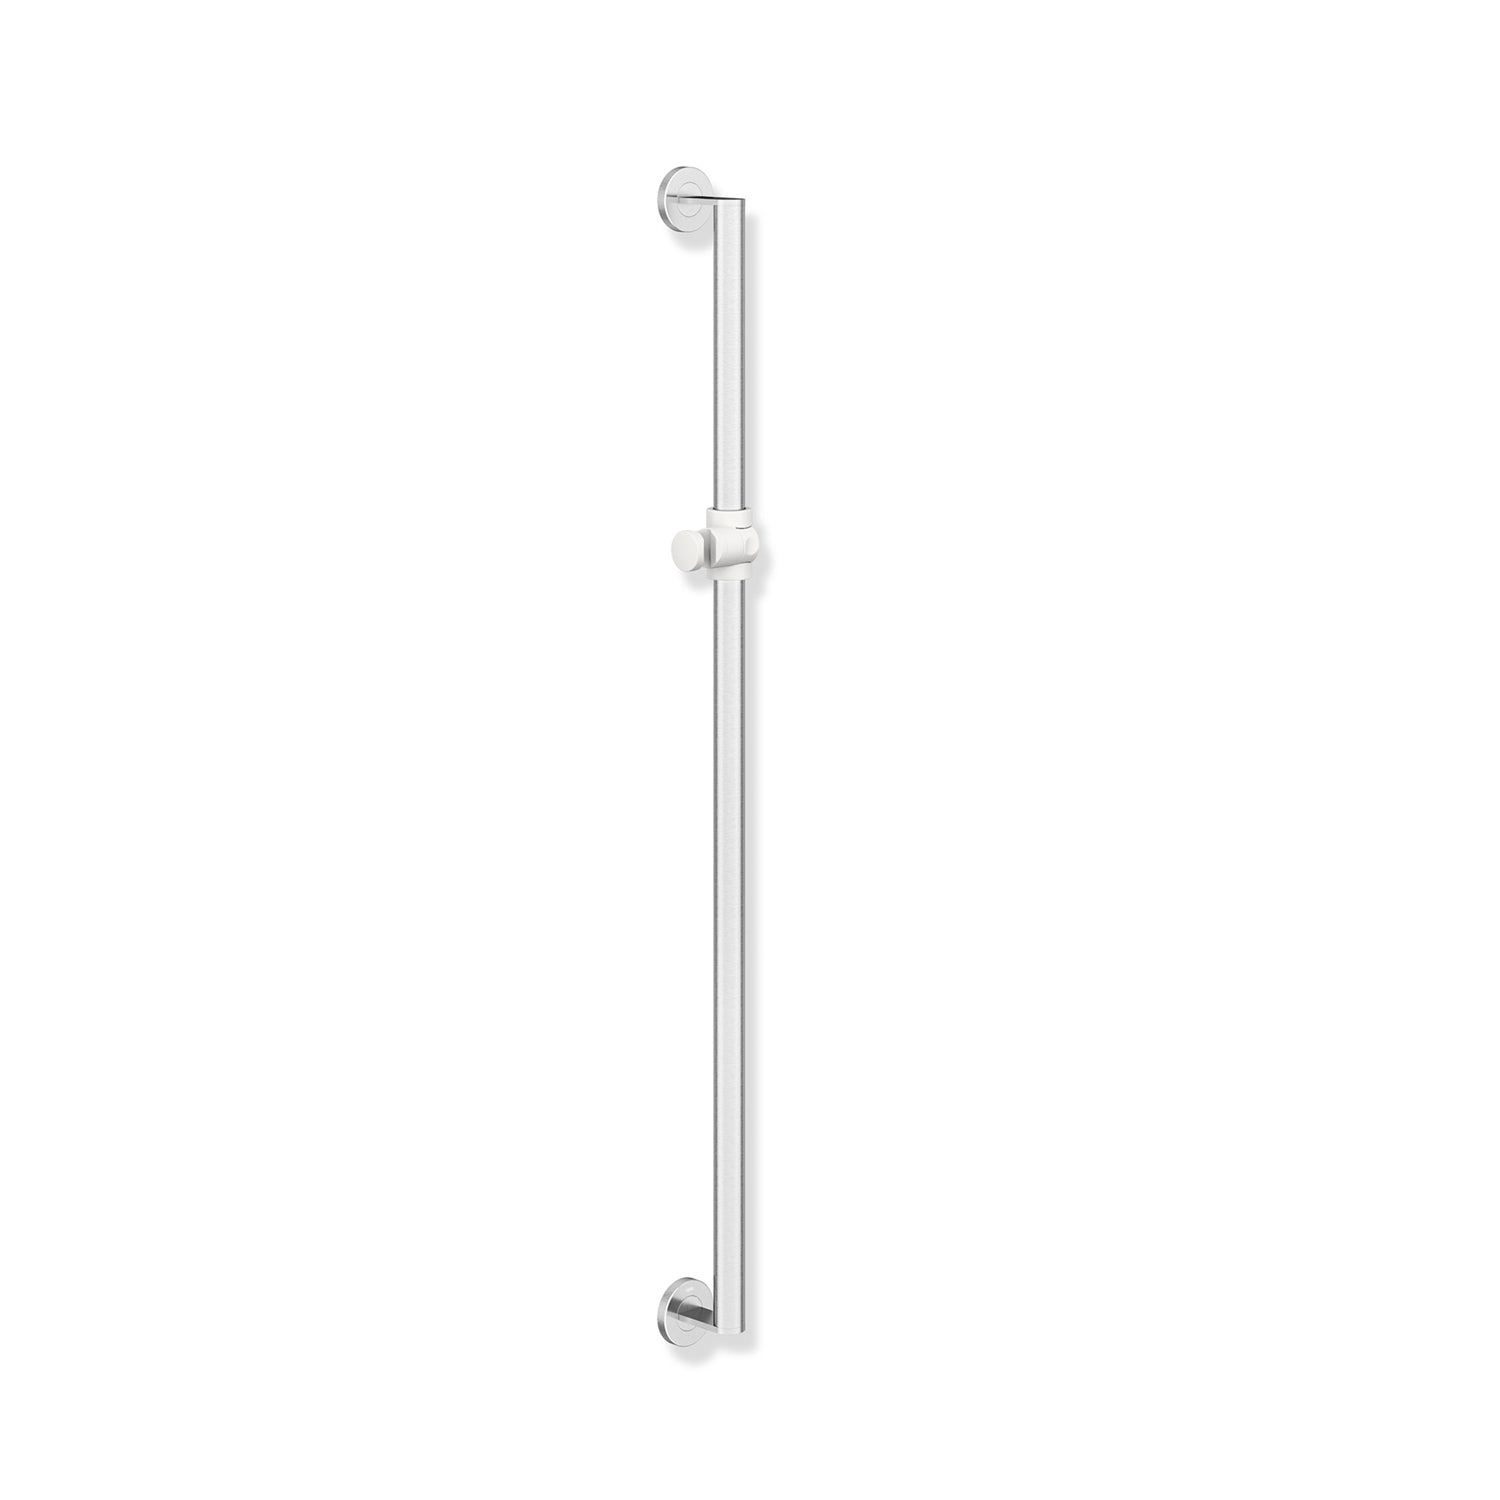 1100mm Freestyle Supportive Shower Rail with a satin steel finish on a white background